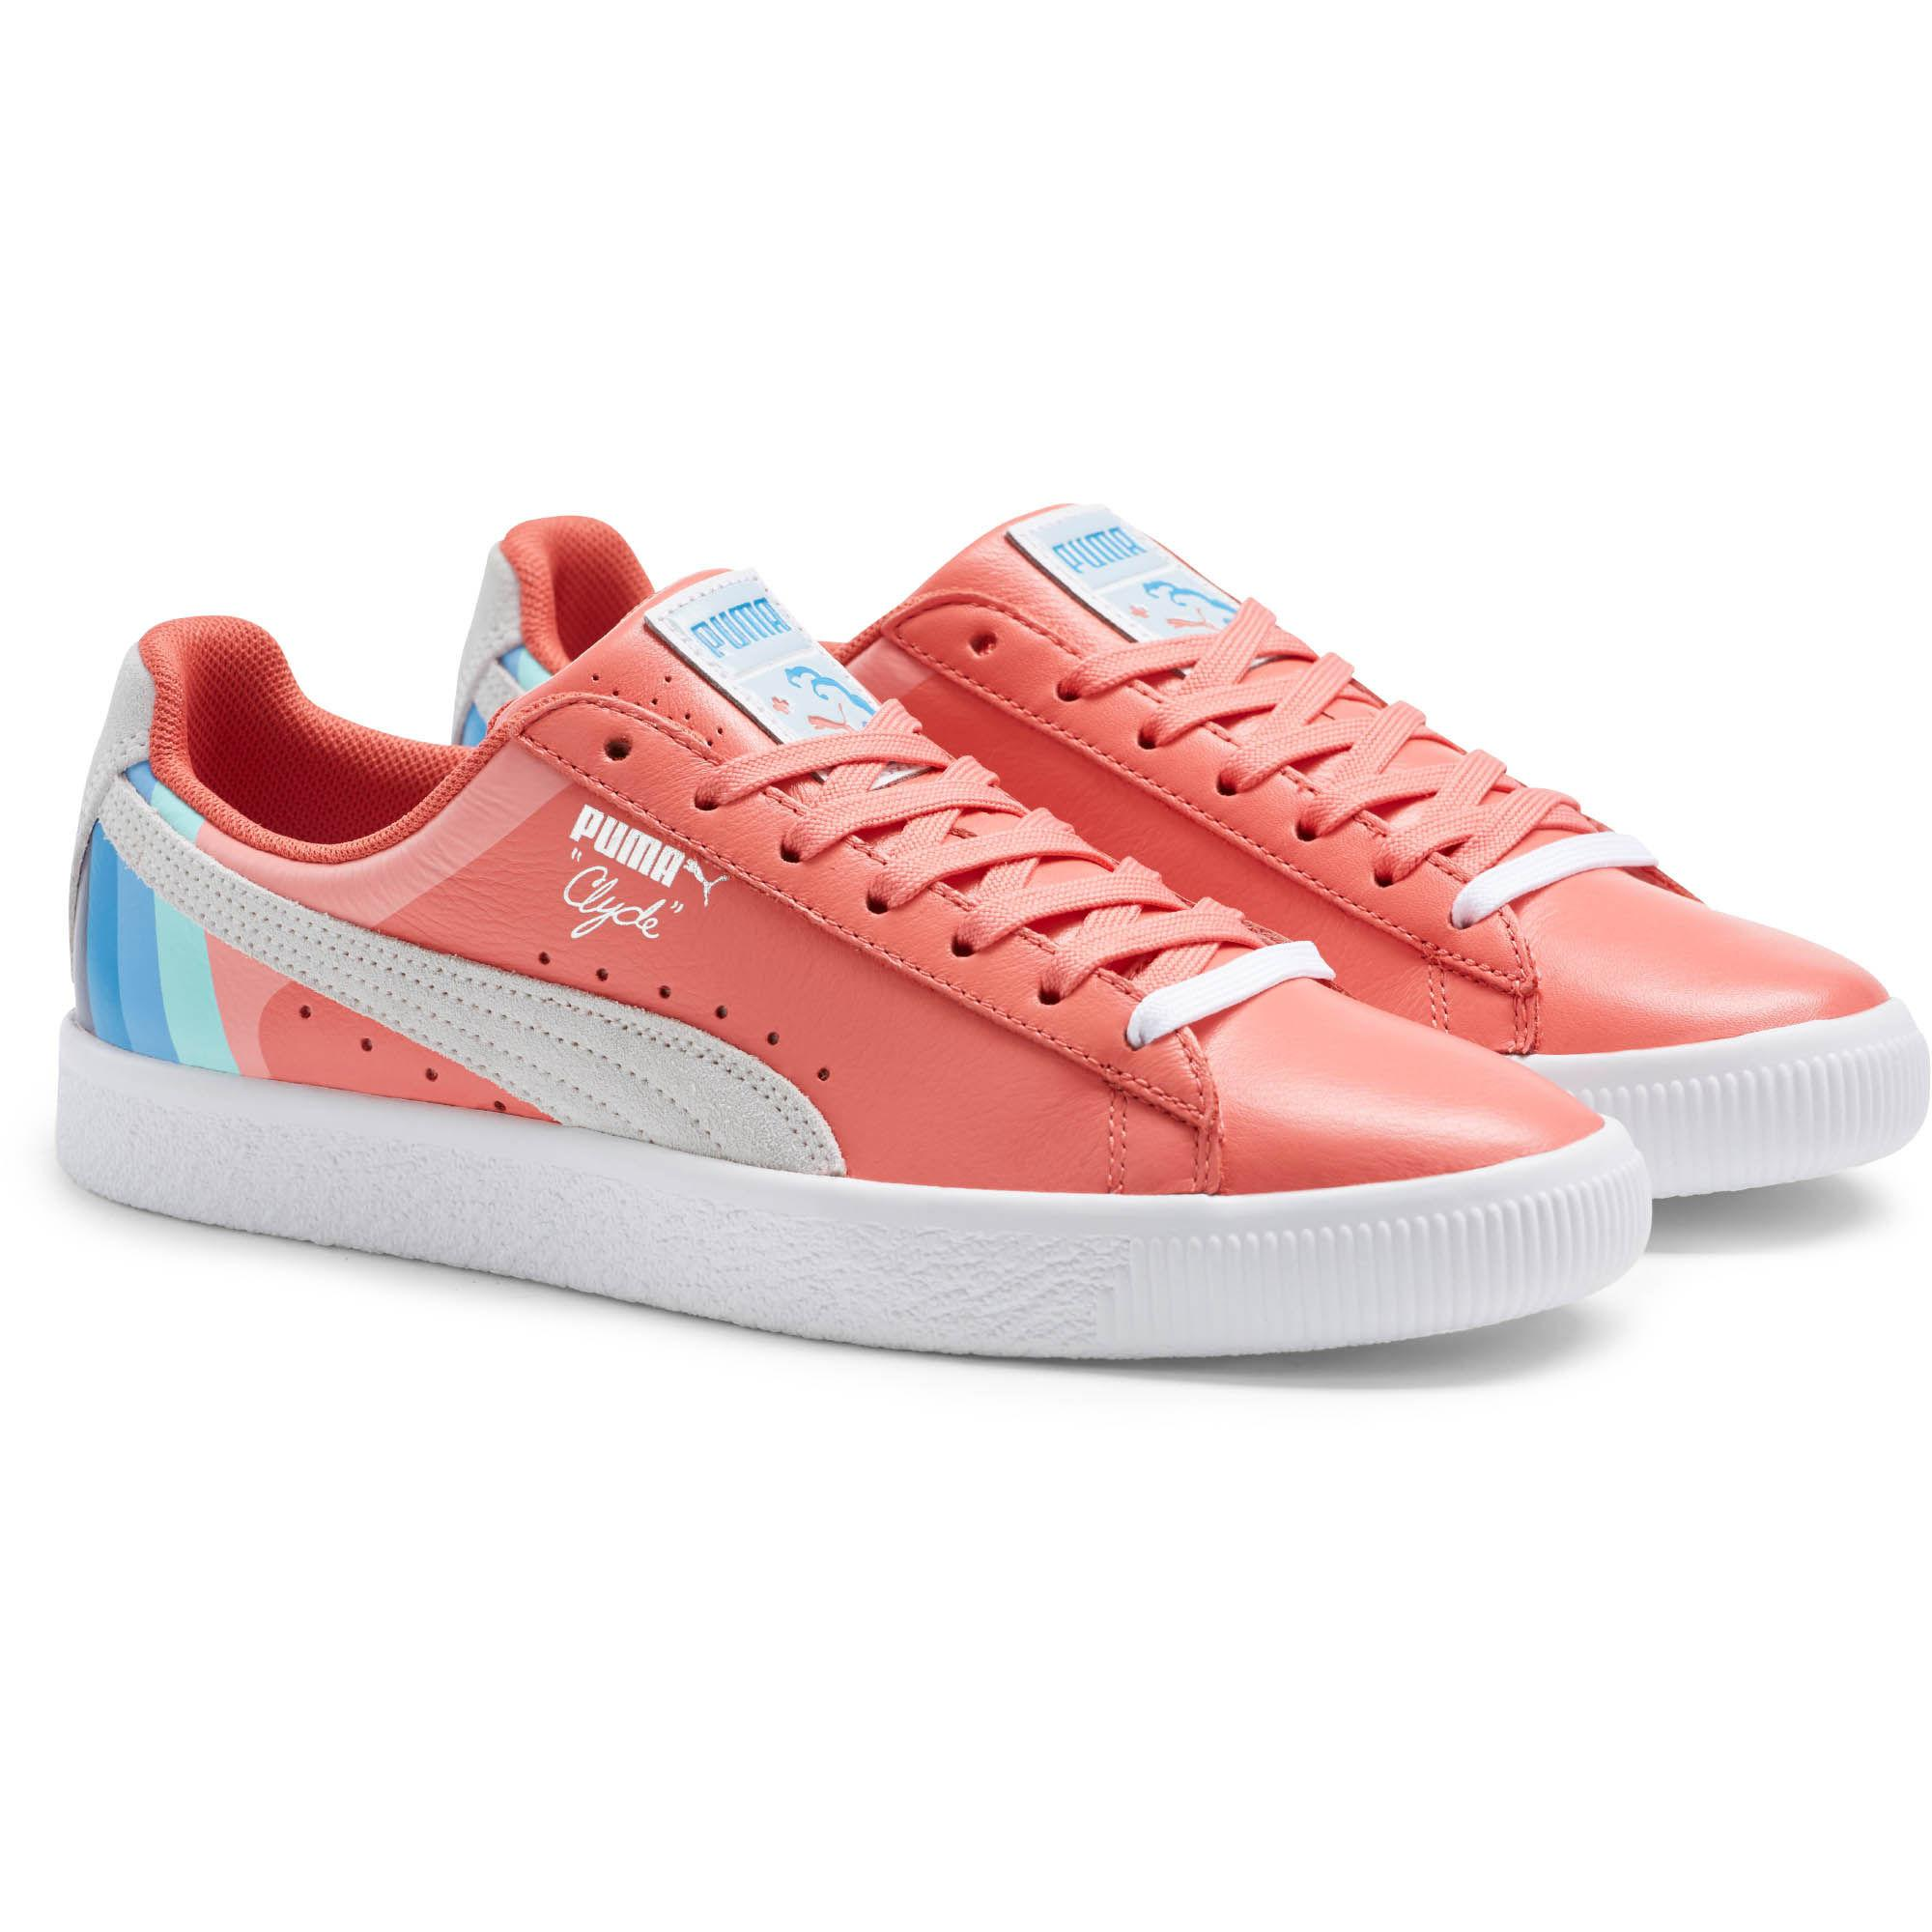 97f48b65f21b Lyst - PUMA X Pink Dolphin Clyde Sneakers for Men